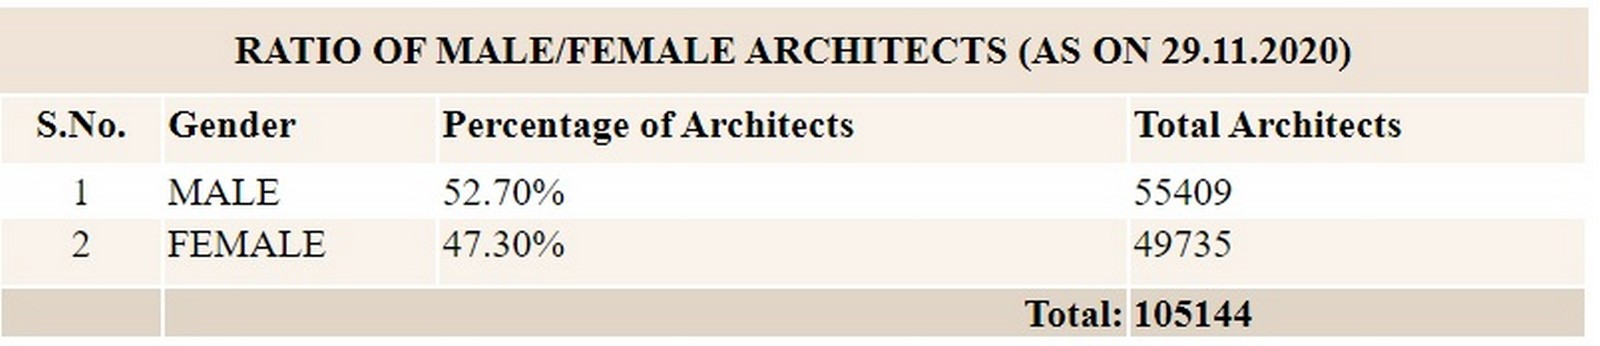 Preferential gender biased treatment in the Architecture community - Sheet2